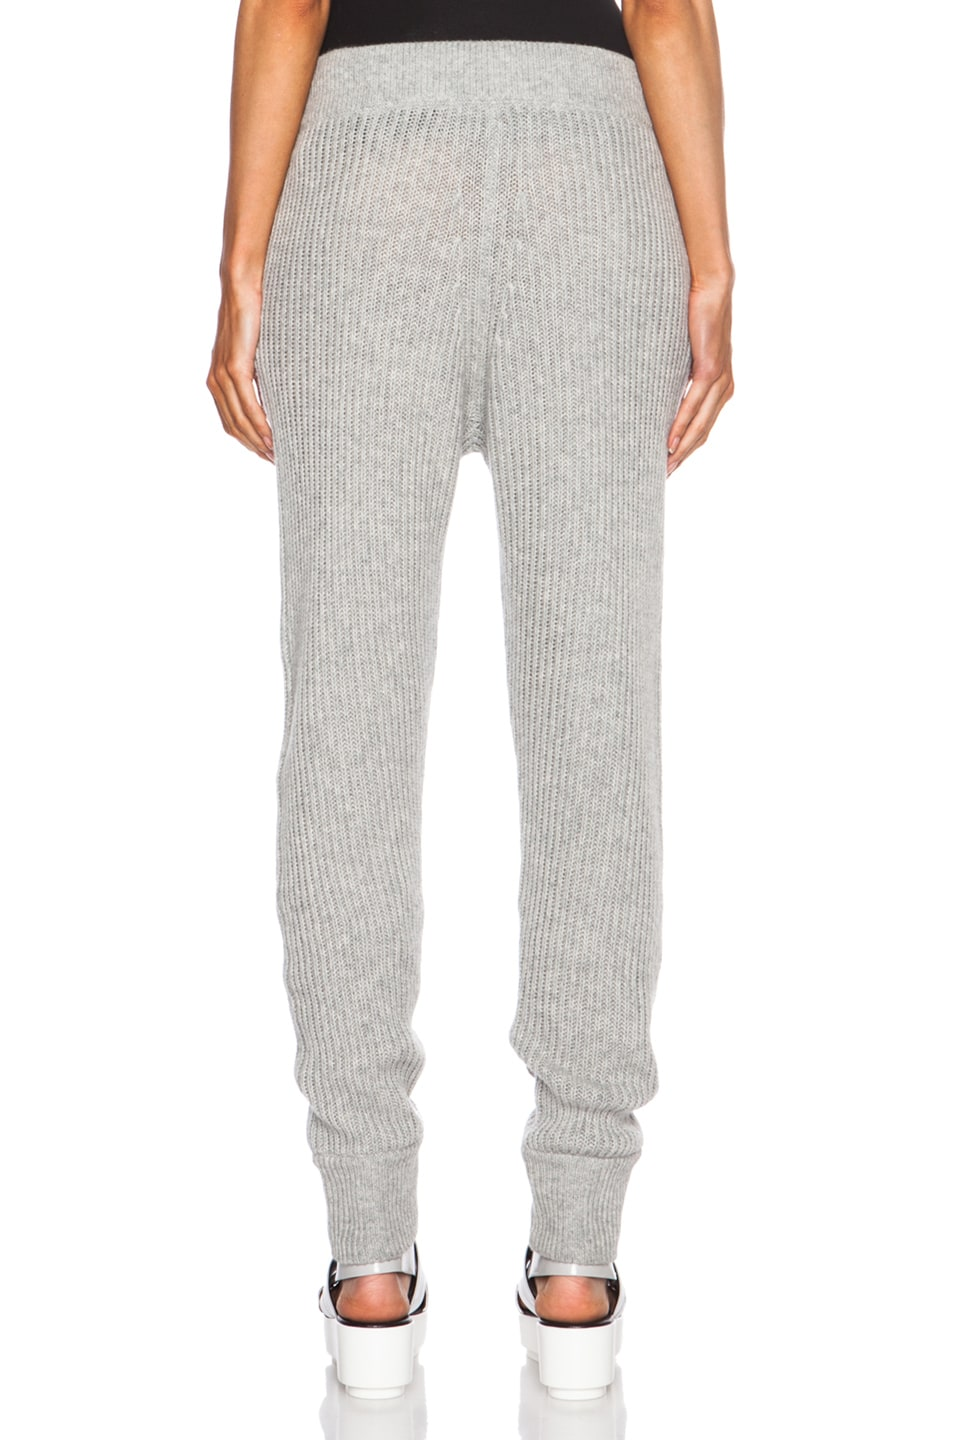 Image 4 of T by Alexander Wang Wool-Blend Sweatpants in Heather Grey